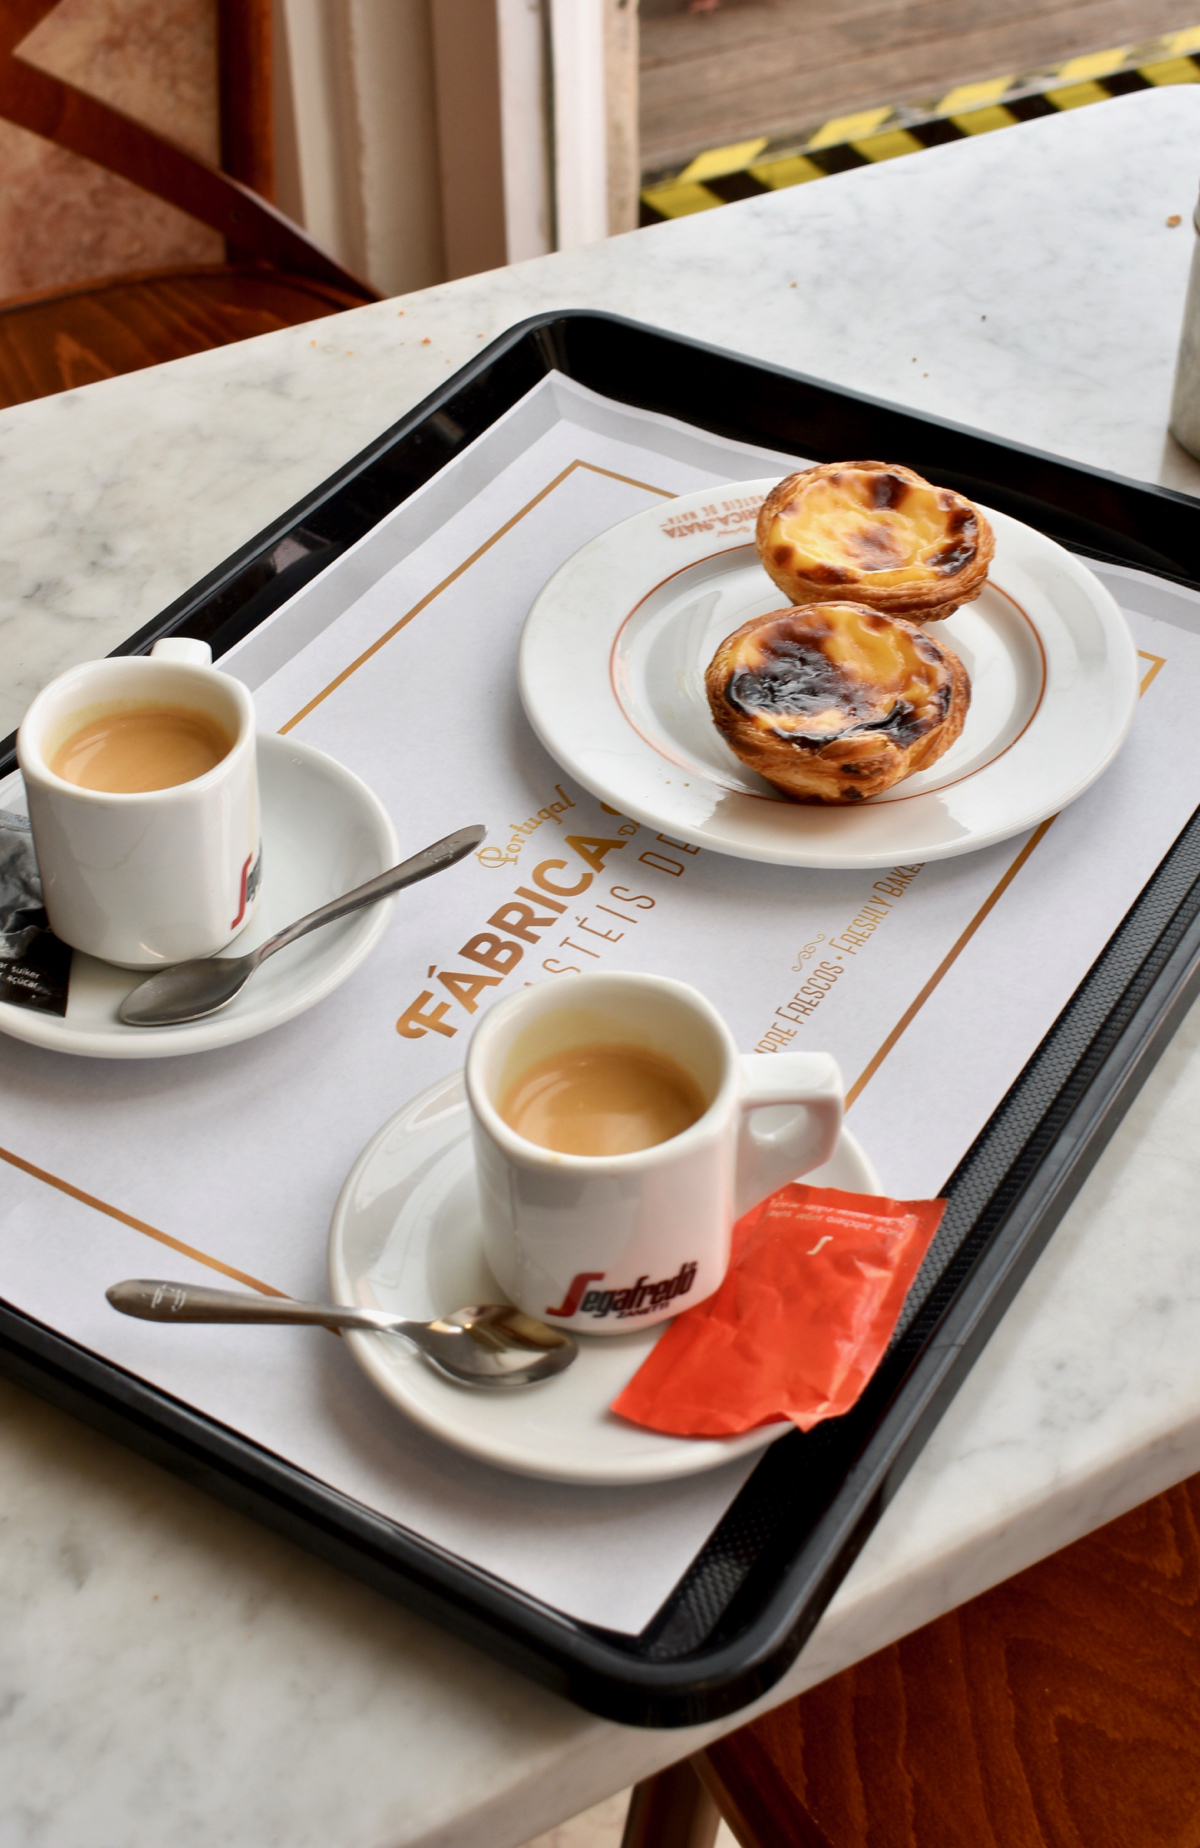 best pastel de nata isbon food, lisbon food, custard tarts lisbon, pasteis de nata lisboa, eurovision lisbon, eurovision portugal 2018, gastrogays lisbon, irish travel blogger, lisbon food blog travel, lisbon travel blog, restaurants lisbon food, travel food lisbon, travel tips lisbon